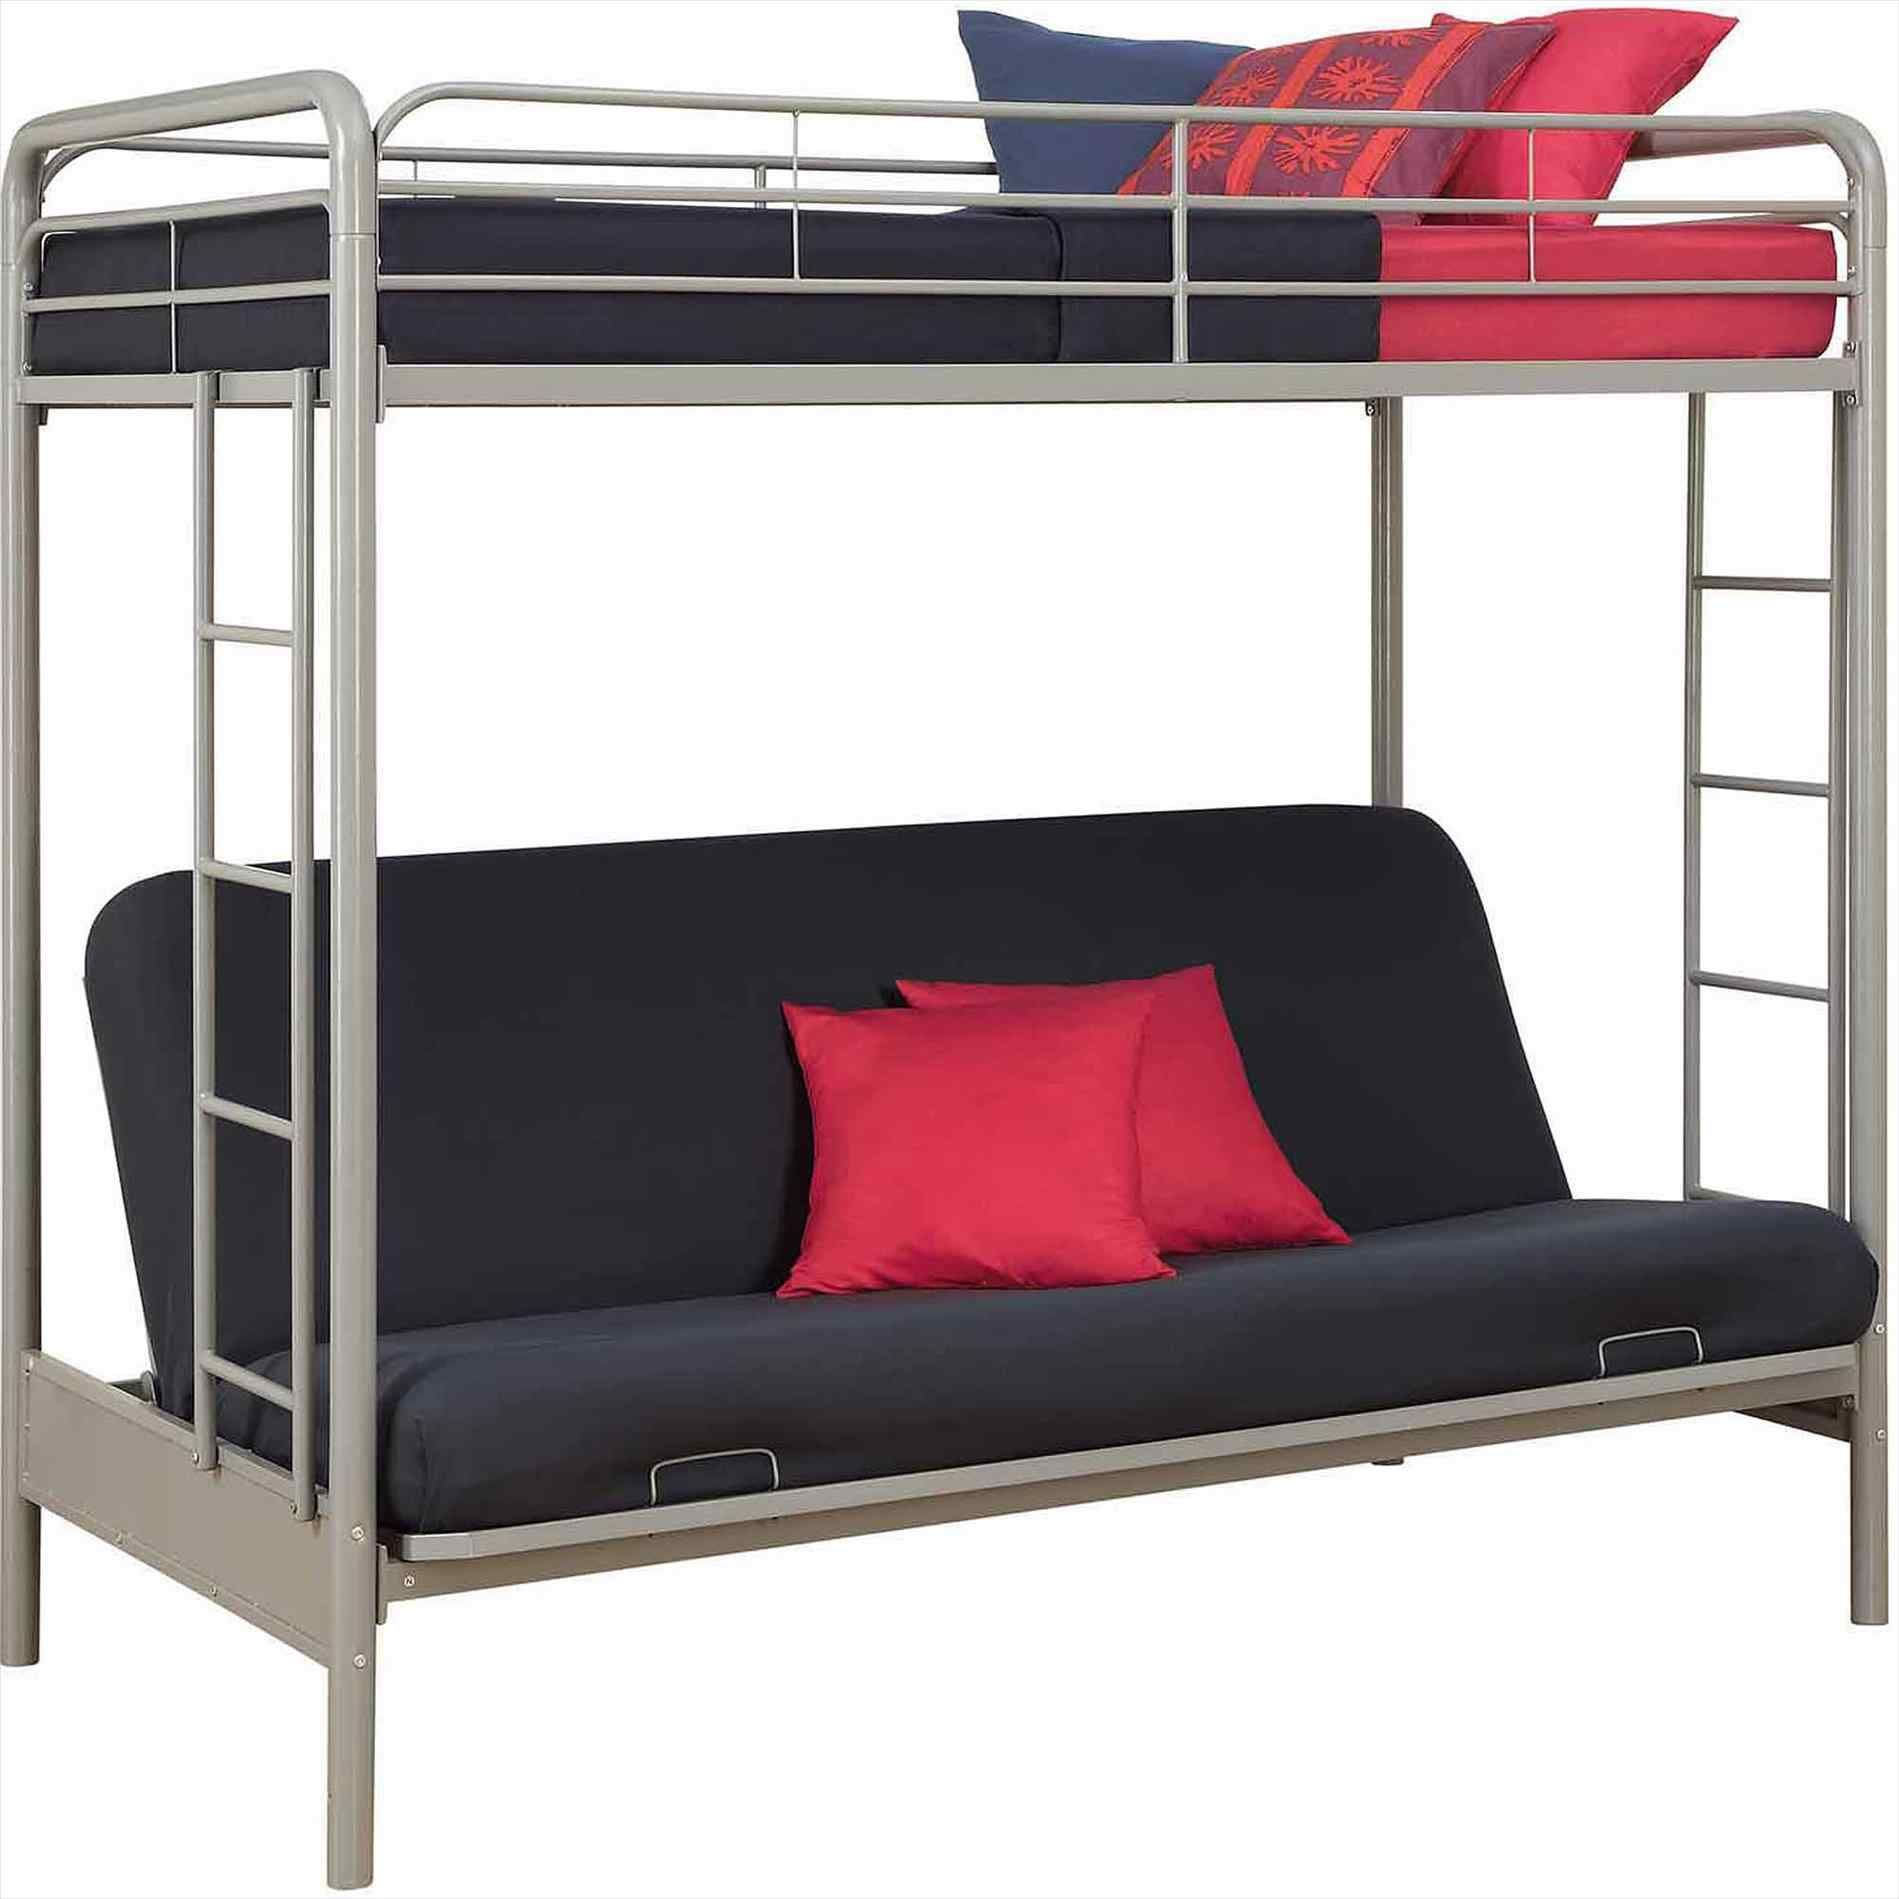 Futon Bunk Beds For S Bed With Double